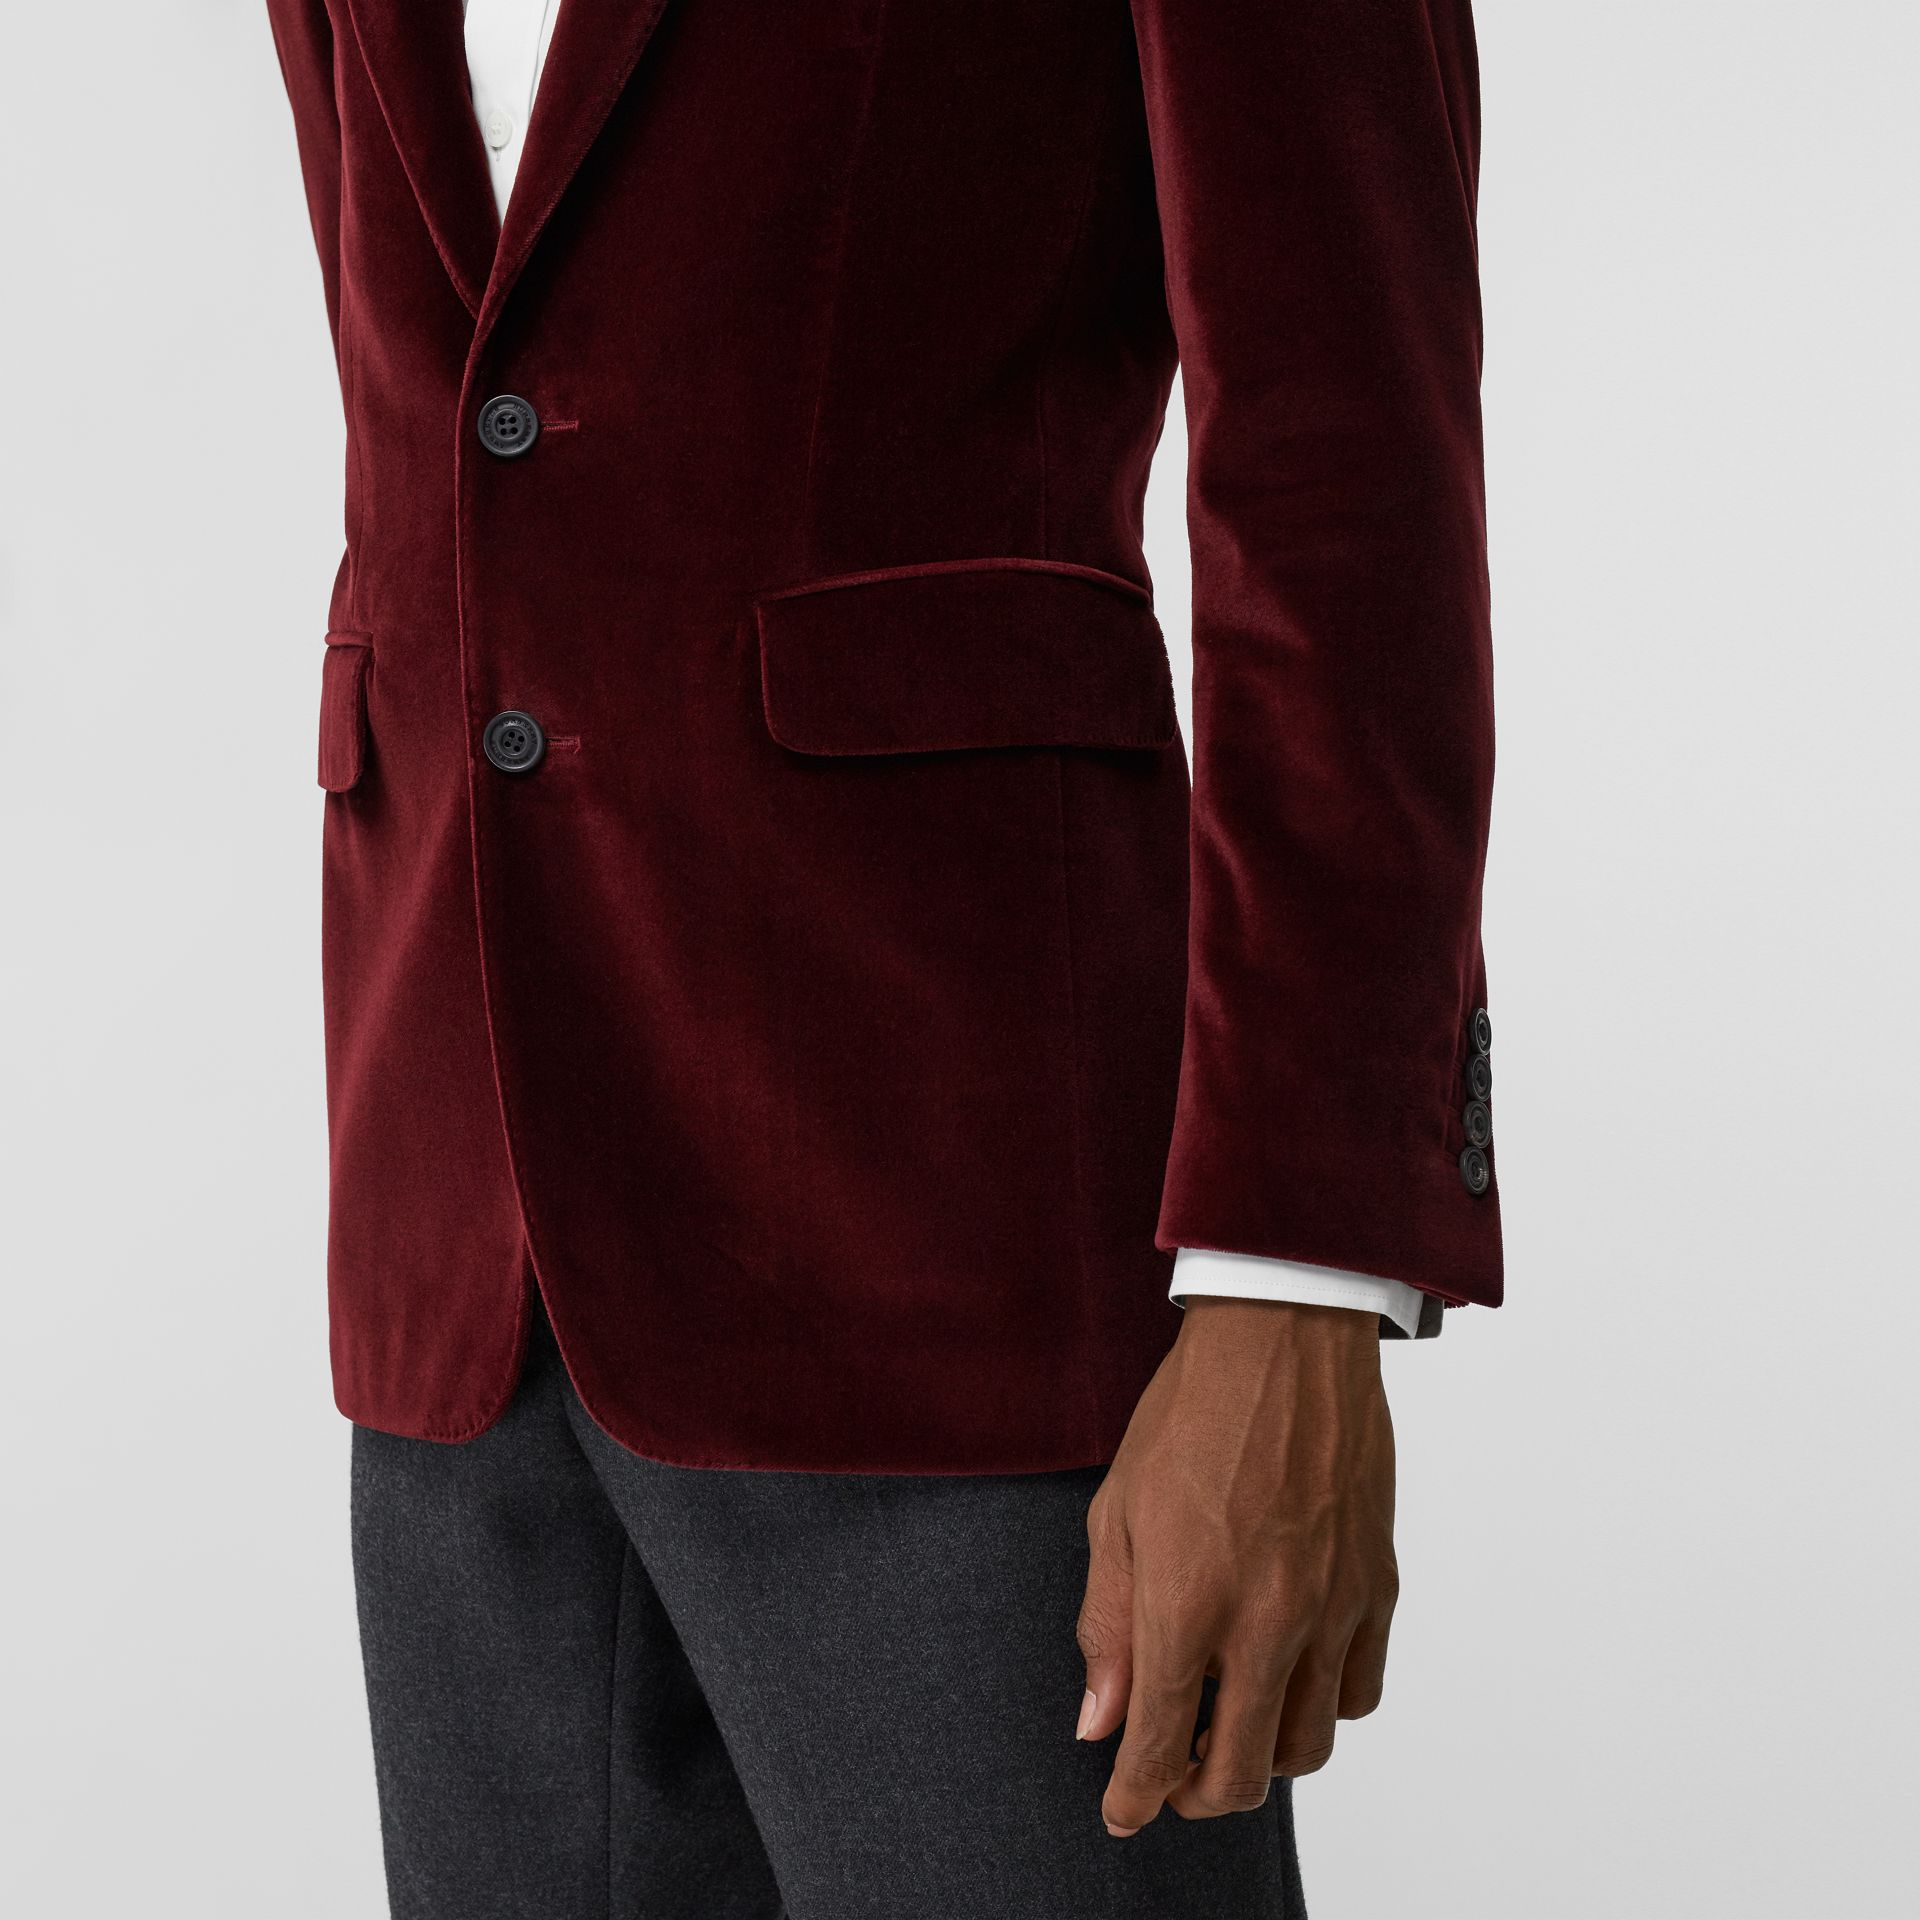 Classic Fit Velvet Tailored Jacket in Burgundy - Men | Burberry - gallery image 5